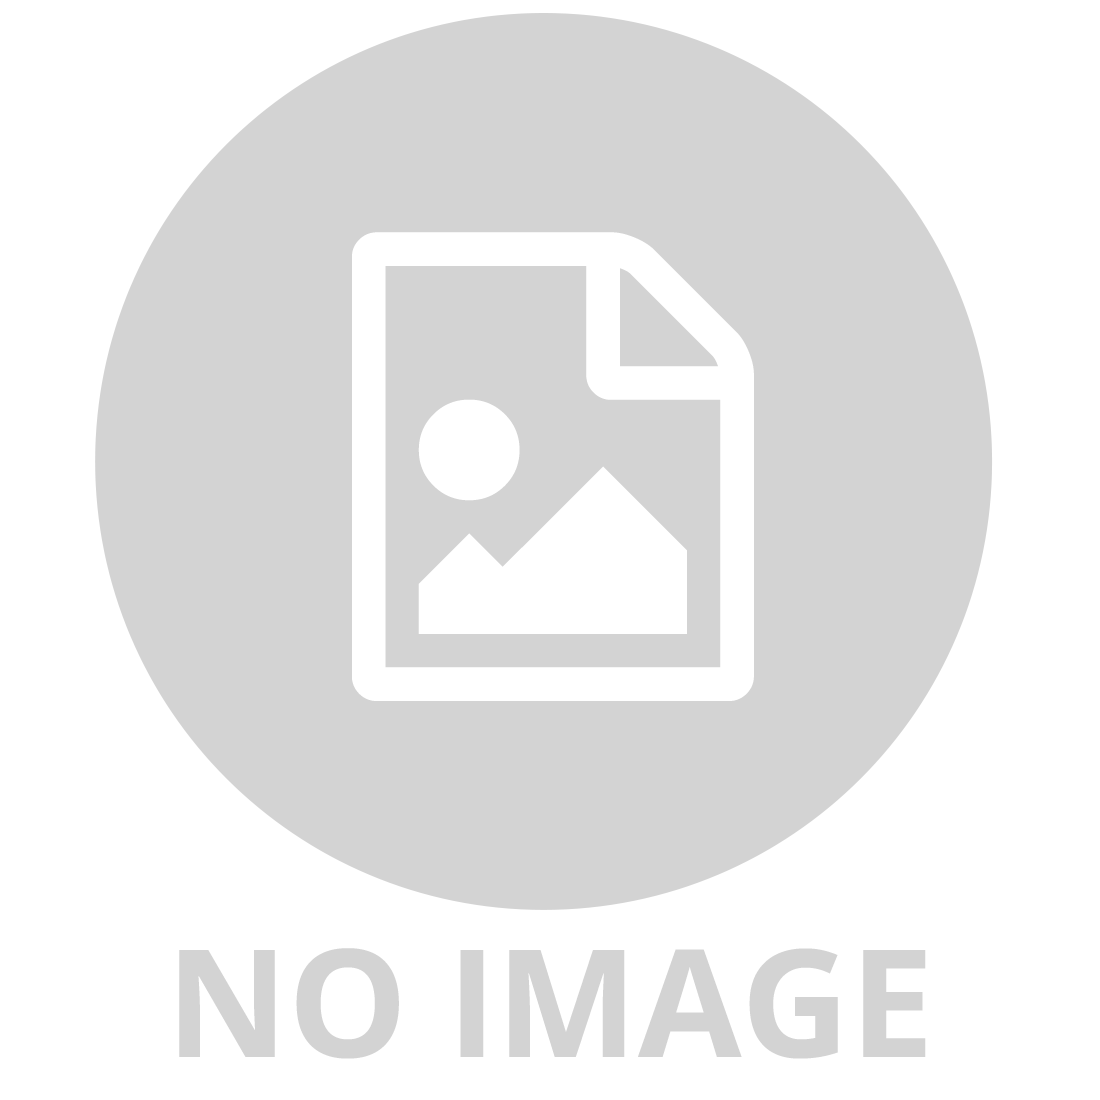 120 PCE WOODEN TRAIN TABLE WITH DRAWER